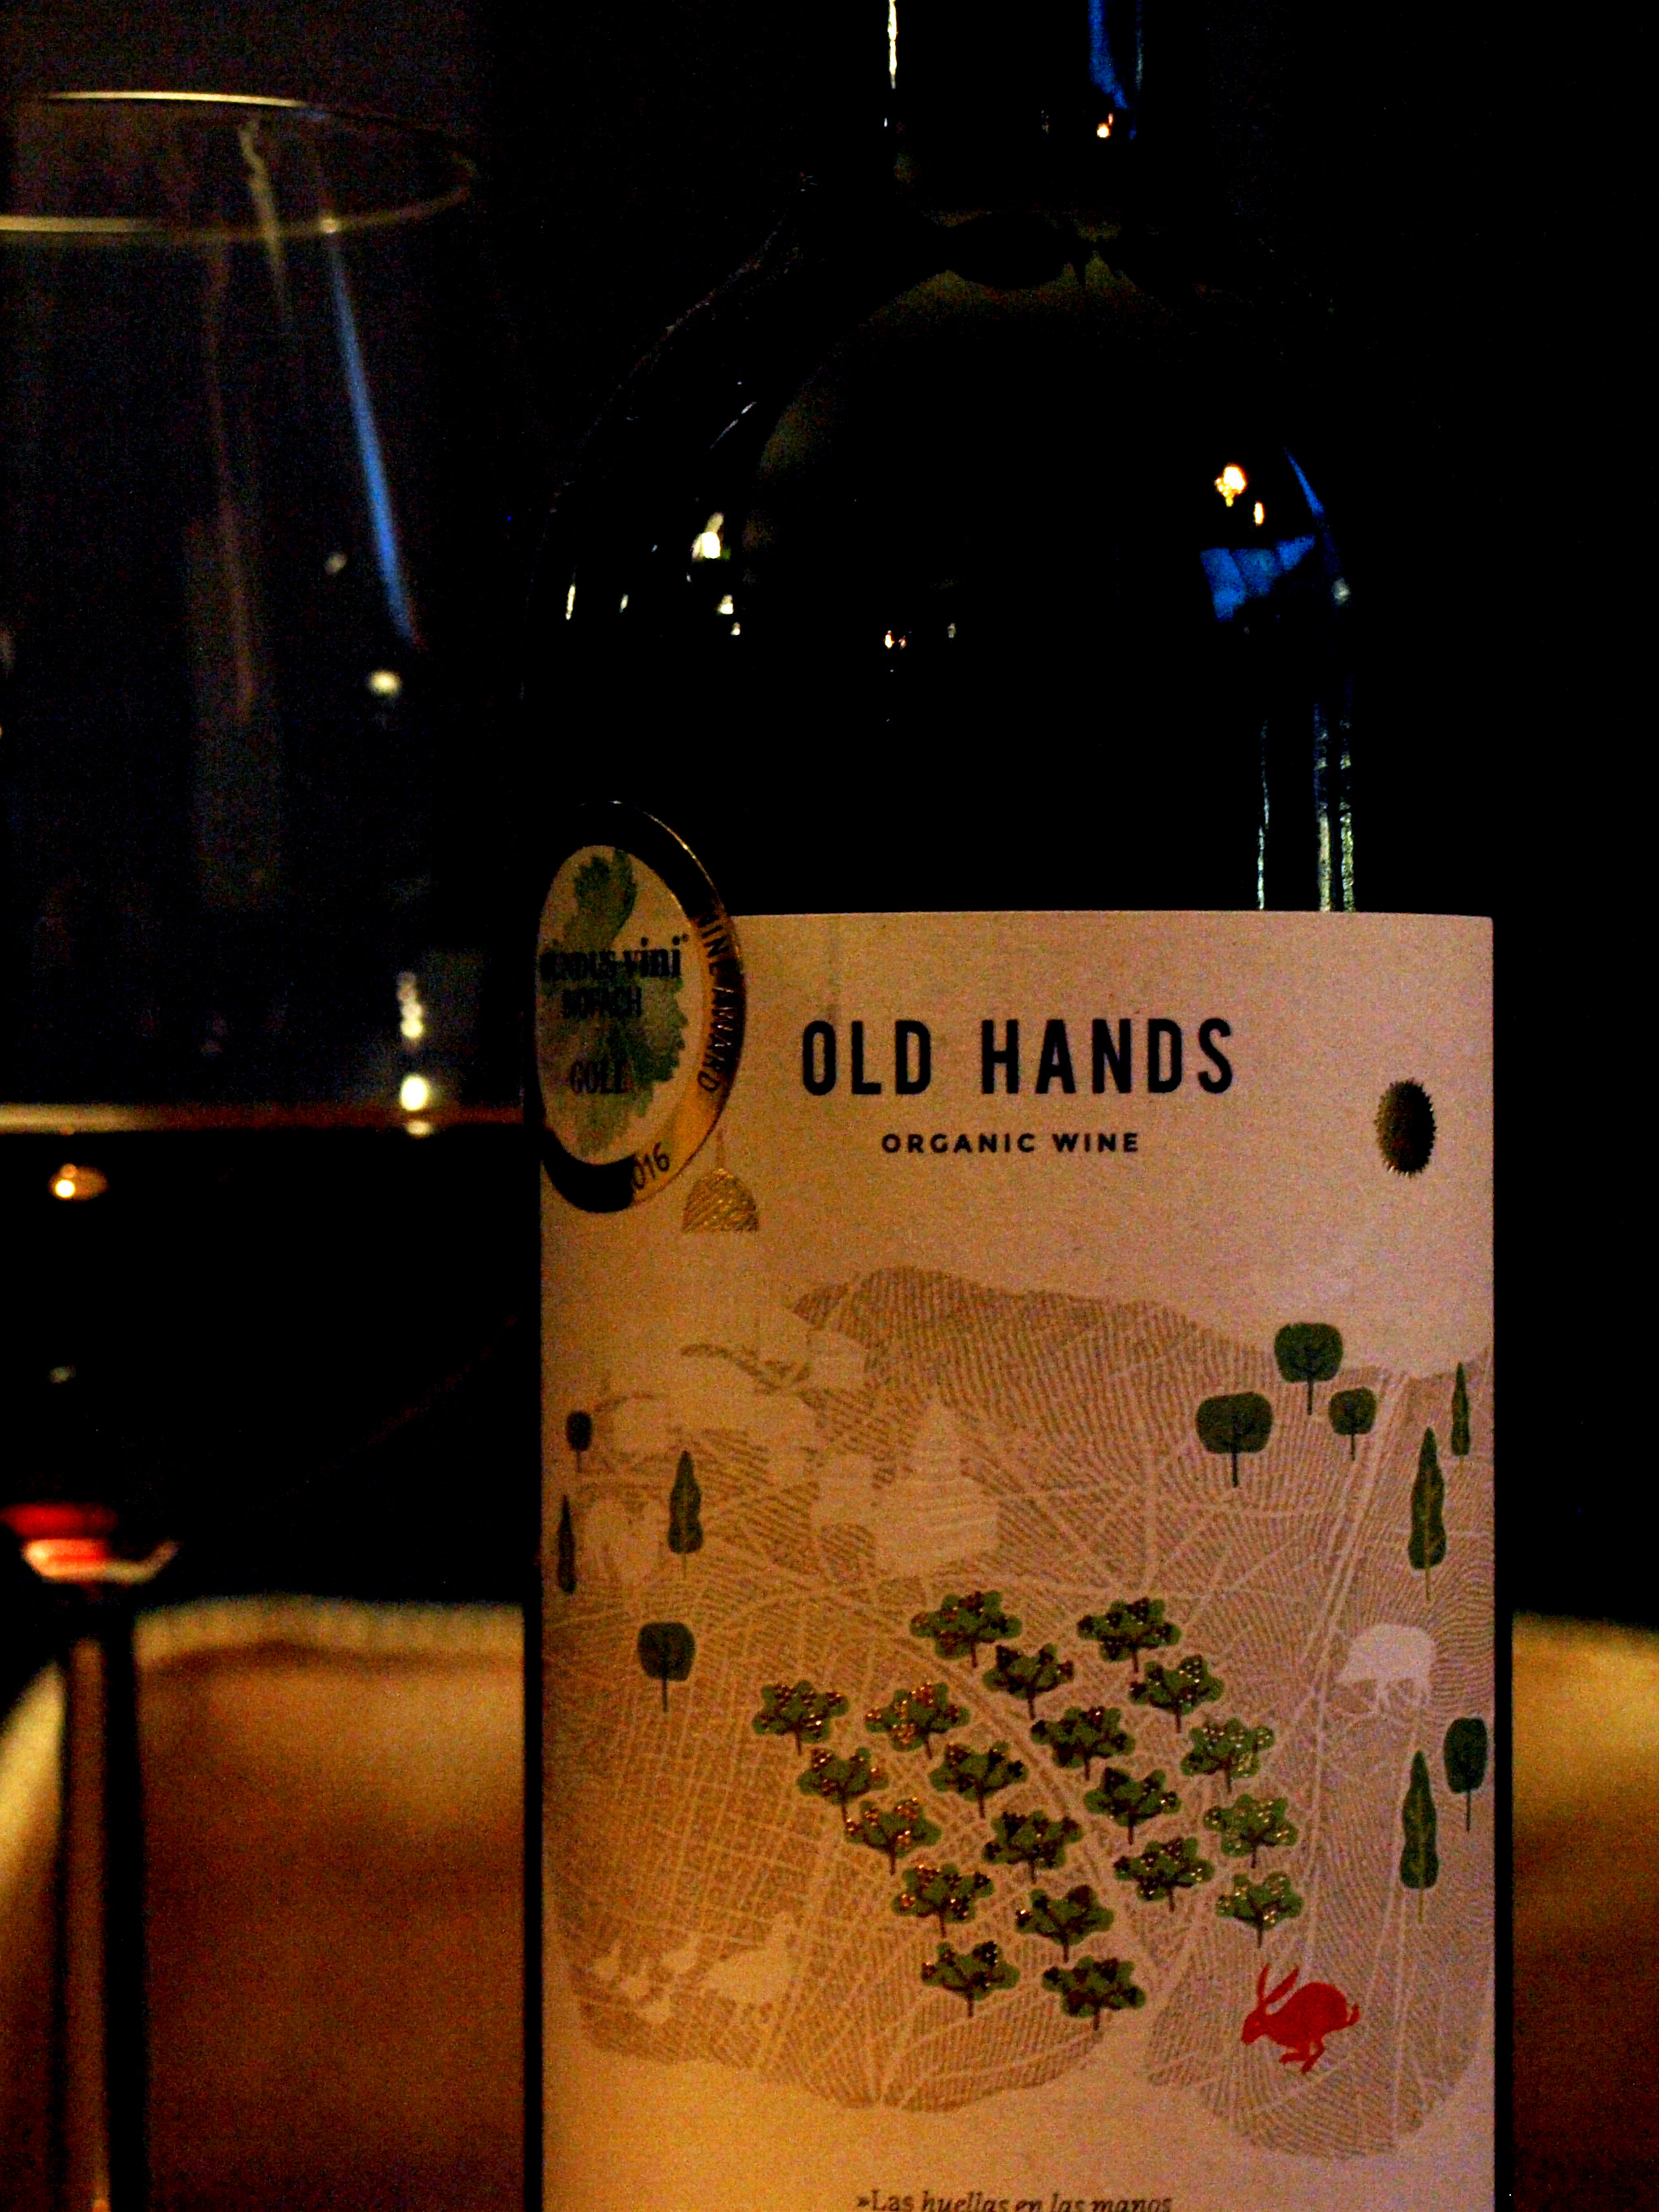 DESEO Tapas Bar Hamburg - Old Hands Organic Wine